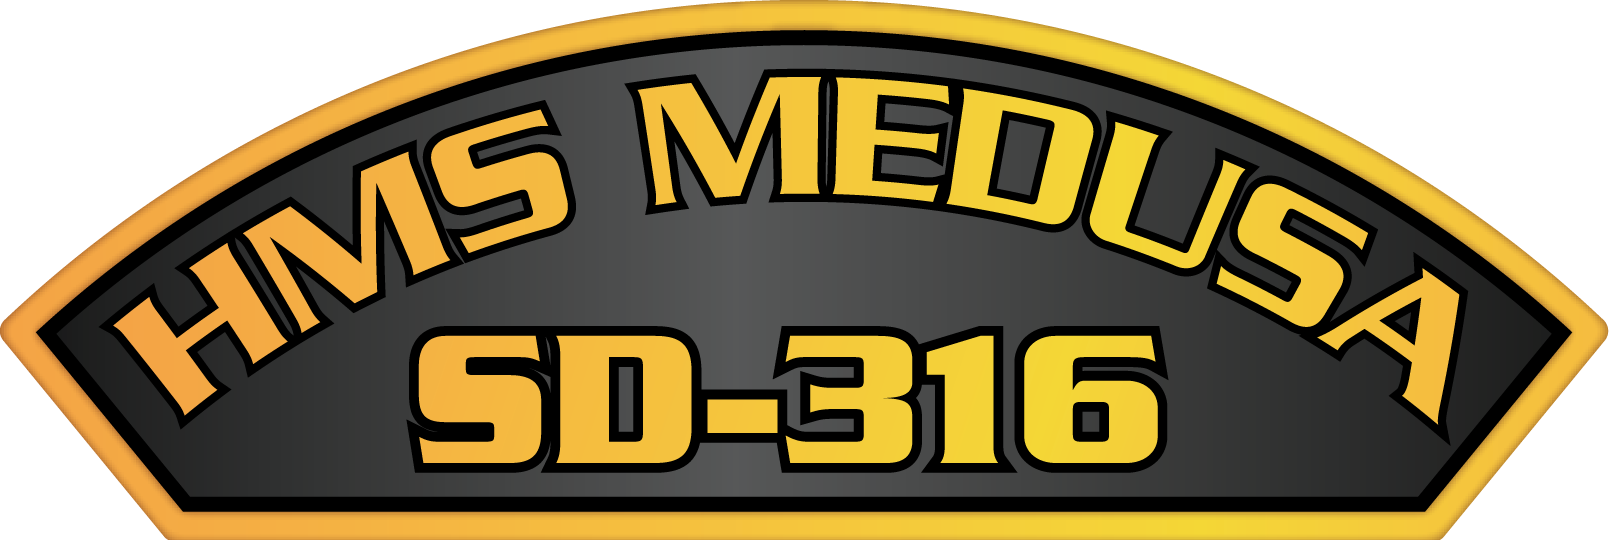 HMS Medusa Assignment Patch